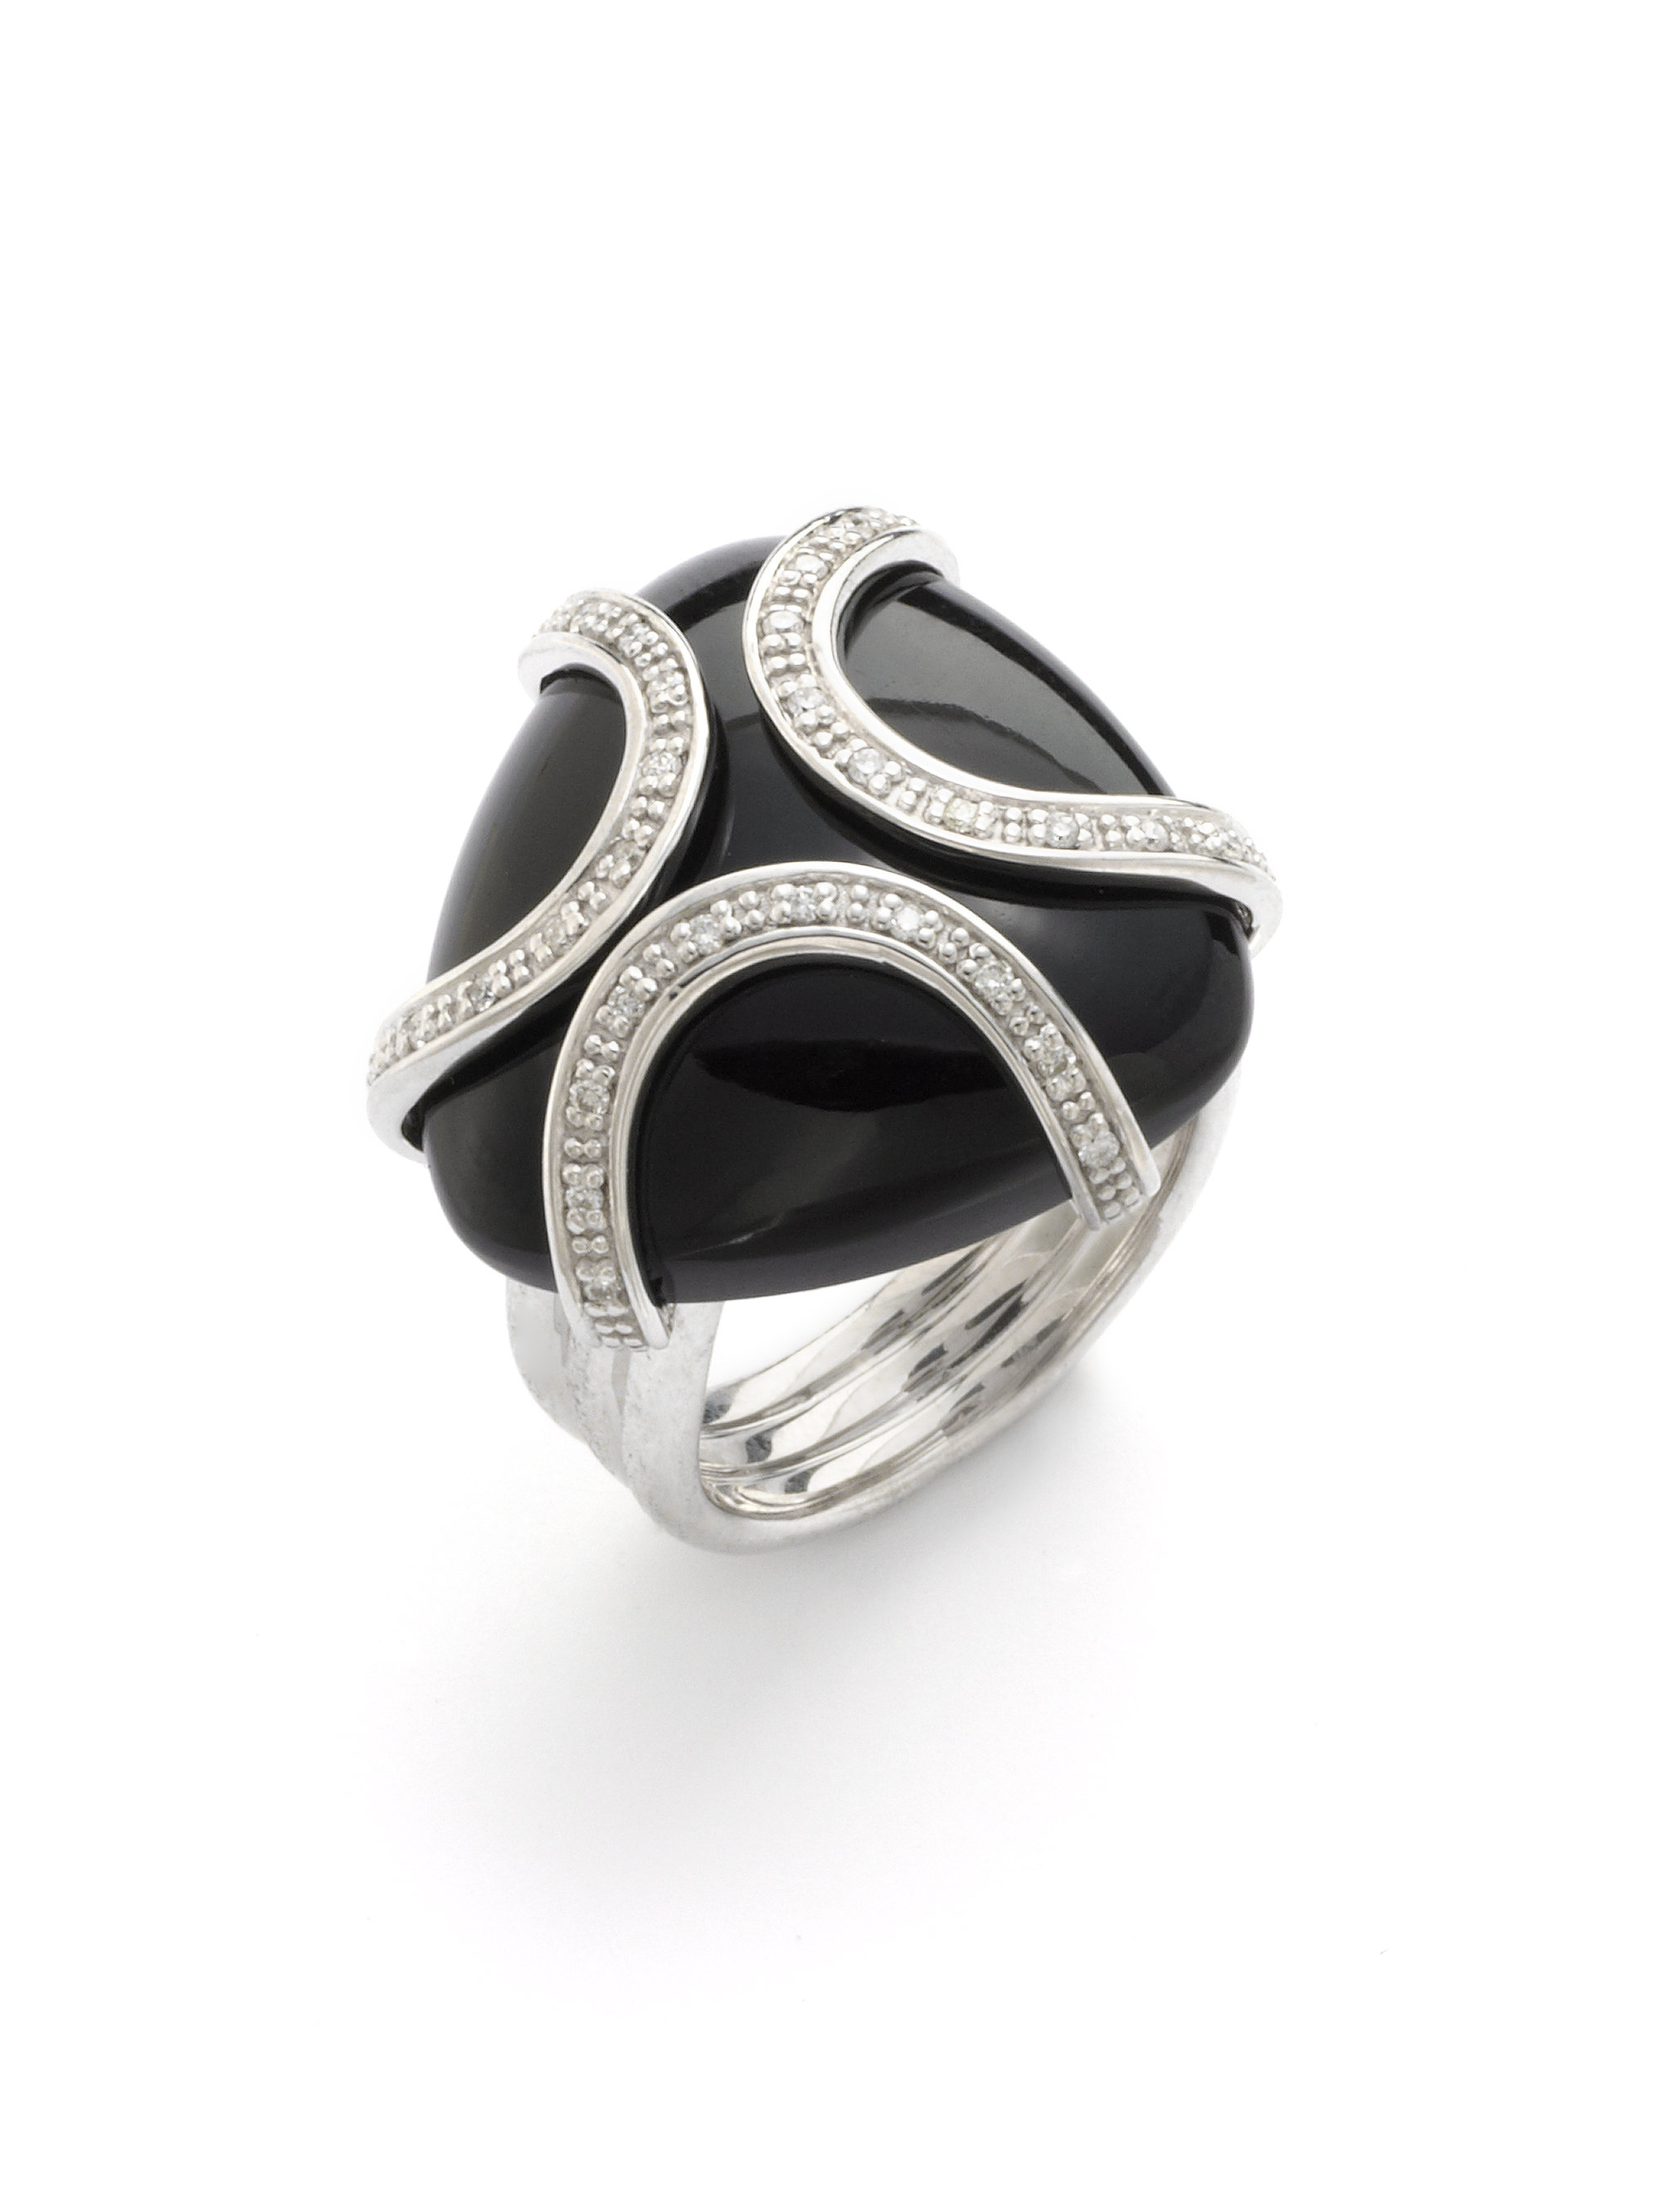 try theme rings black must your for savings men wedding tips ideas creative you planning onyx